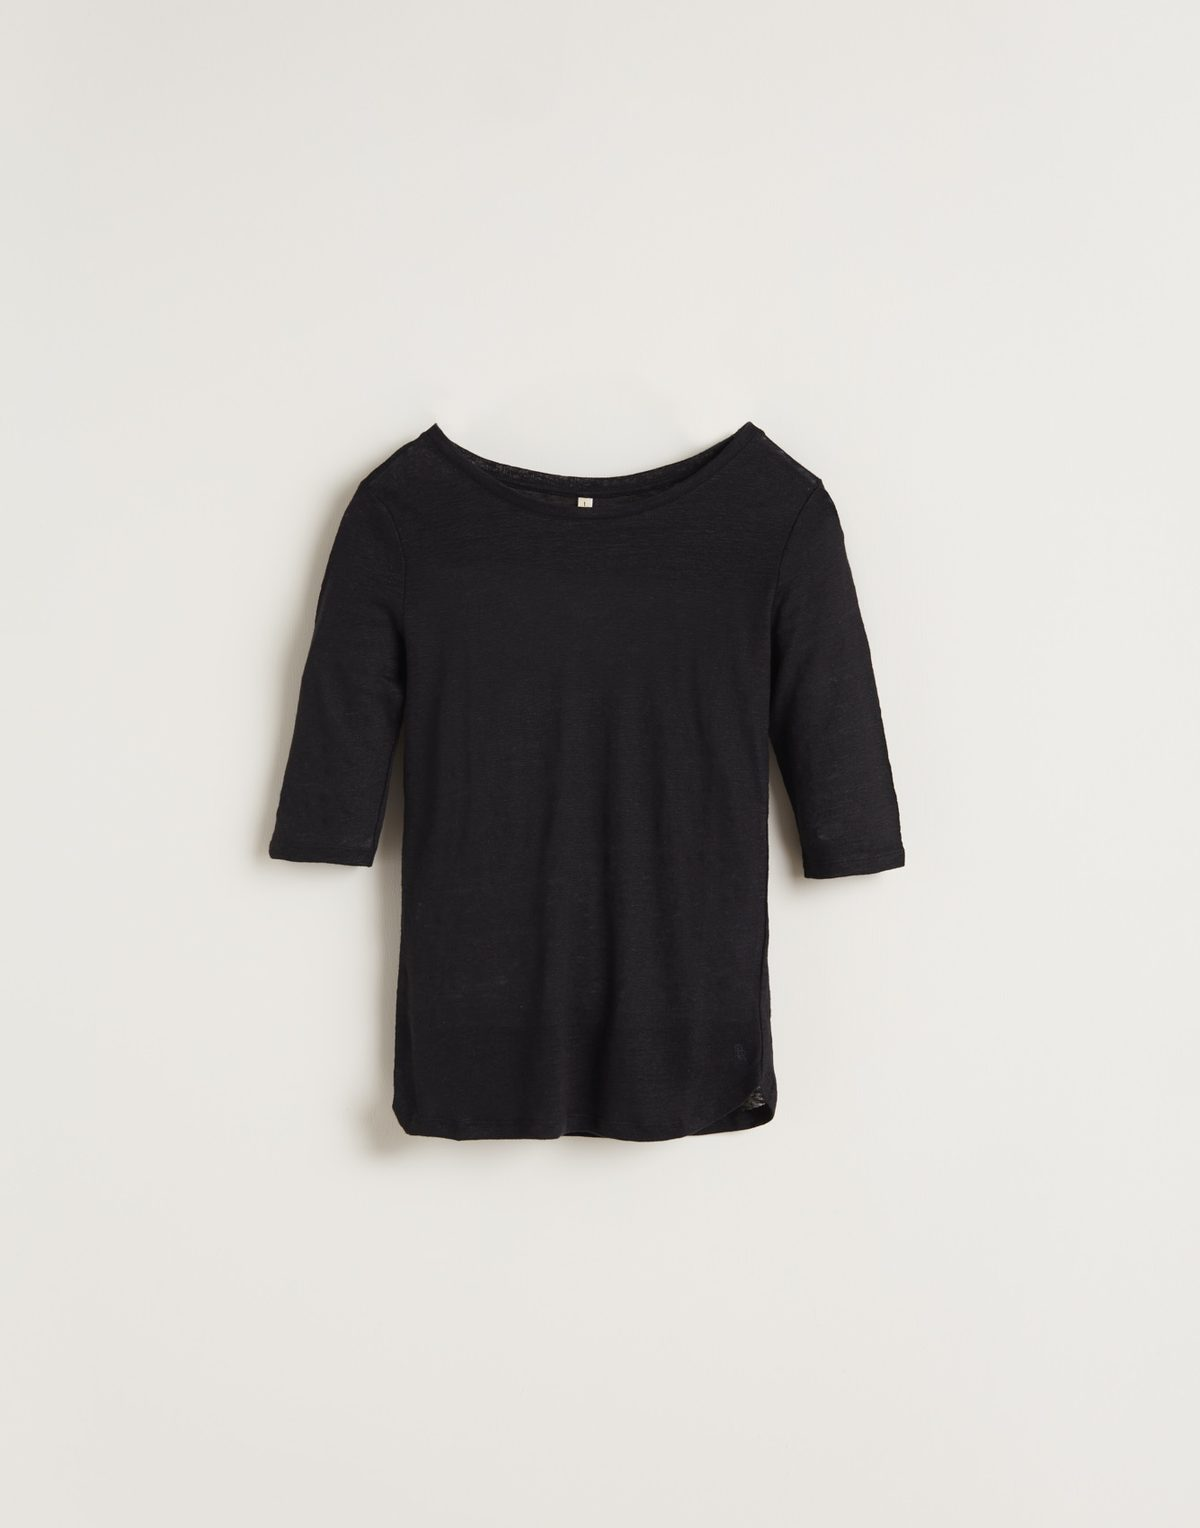 CAMISETA Bellerose AW20 SEAS black